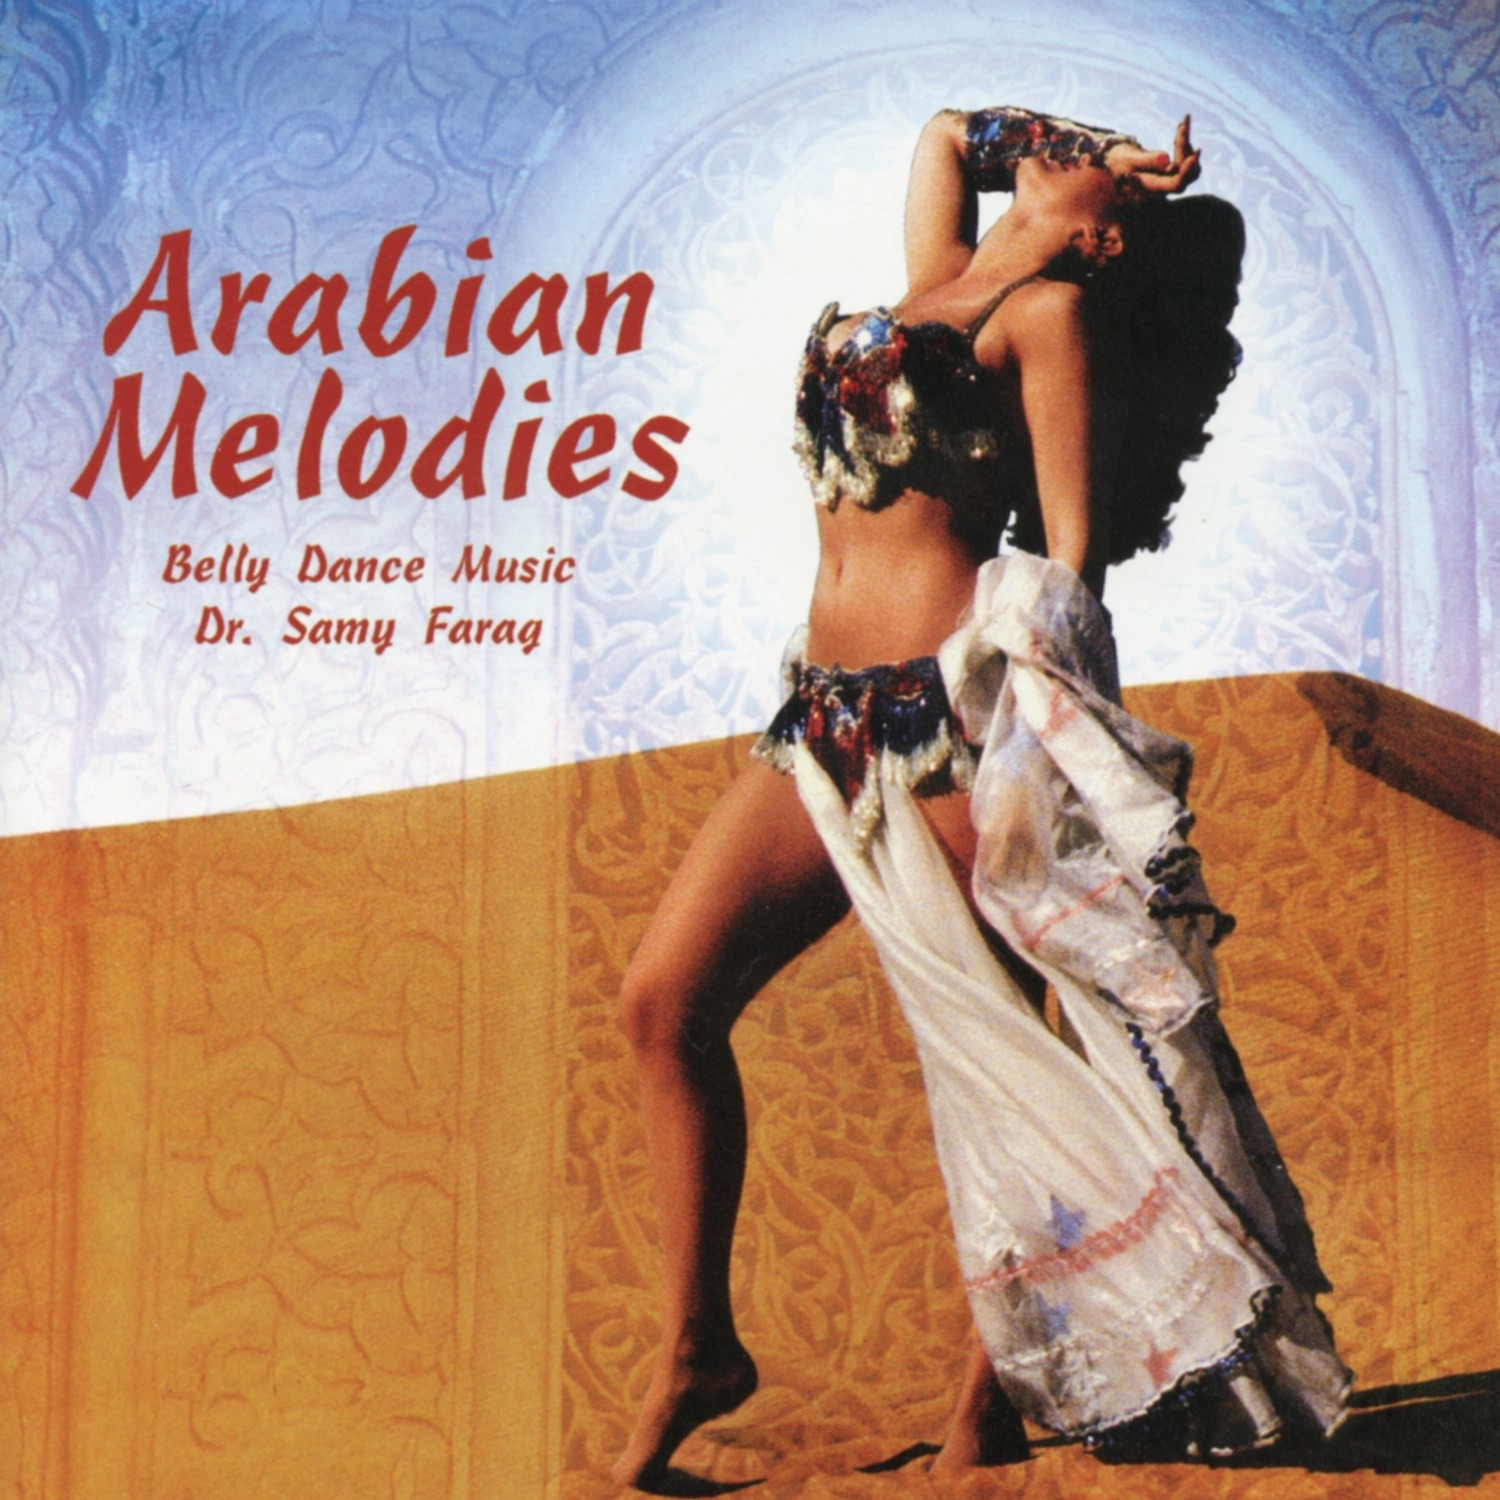 Arabian Melodies: Belly Dance Music